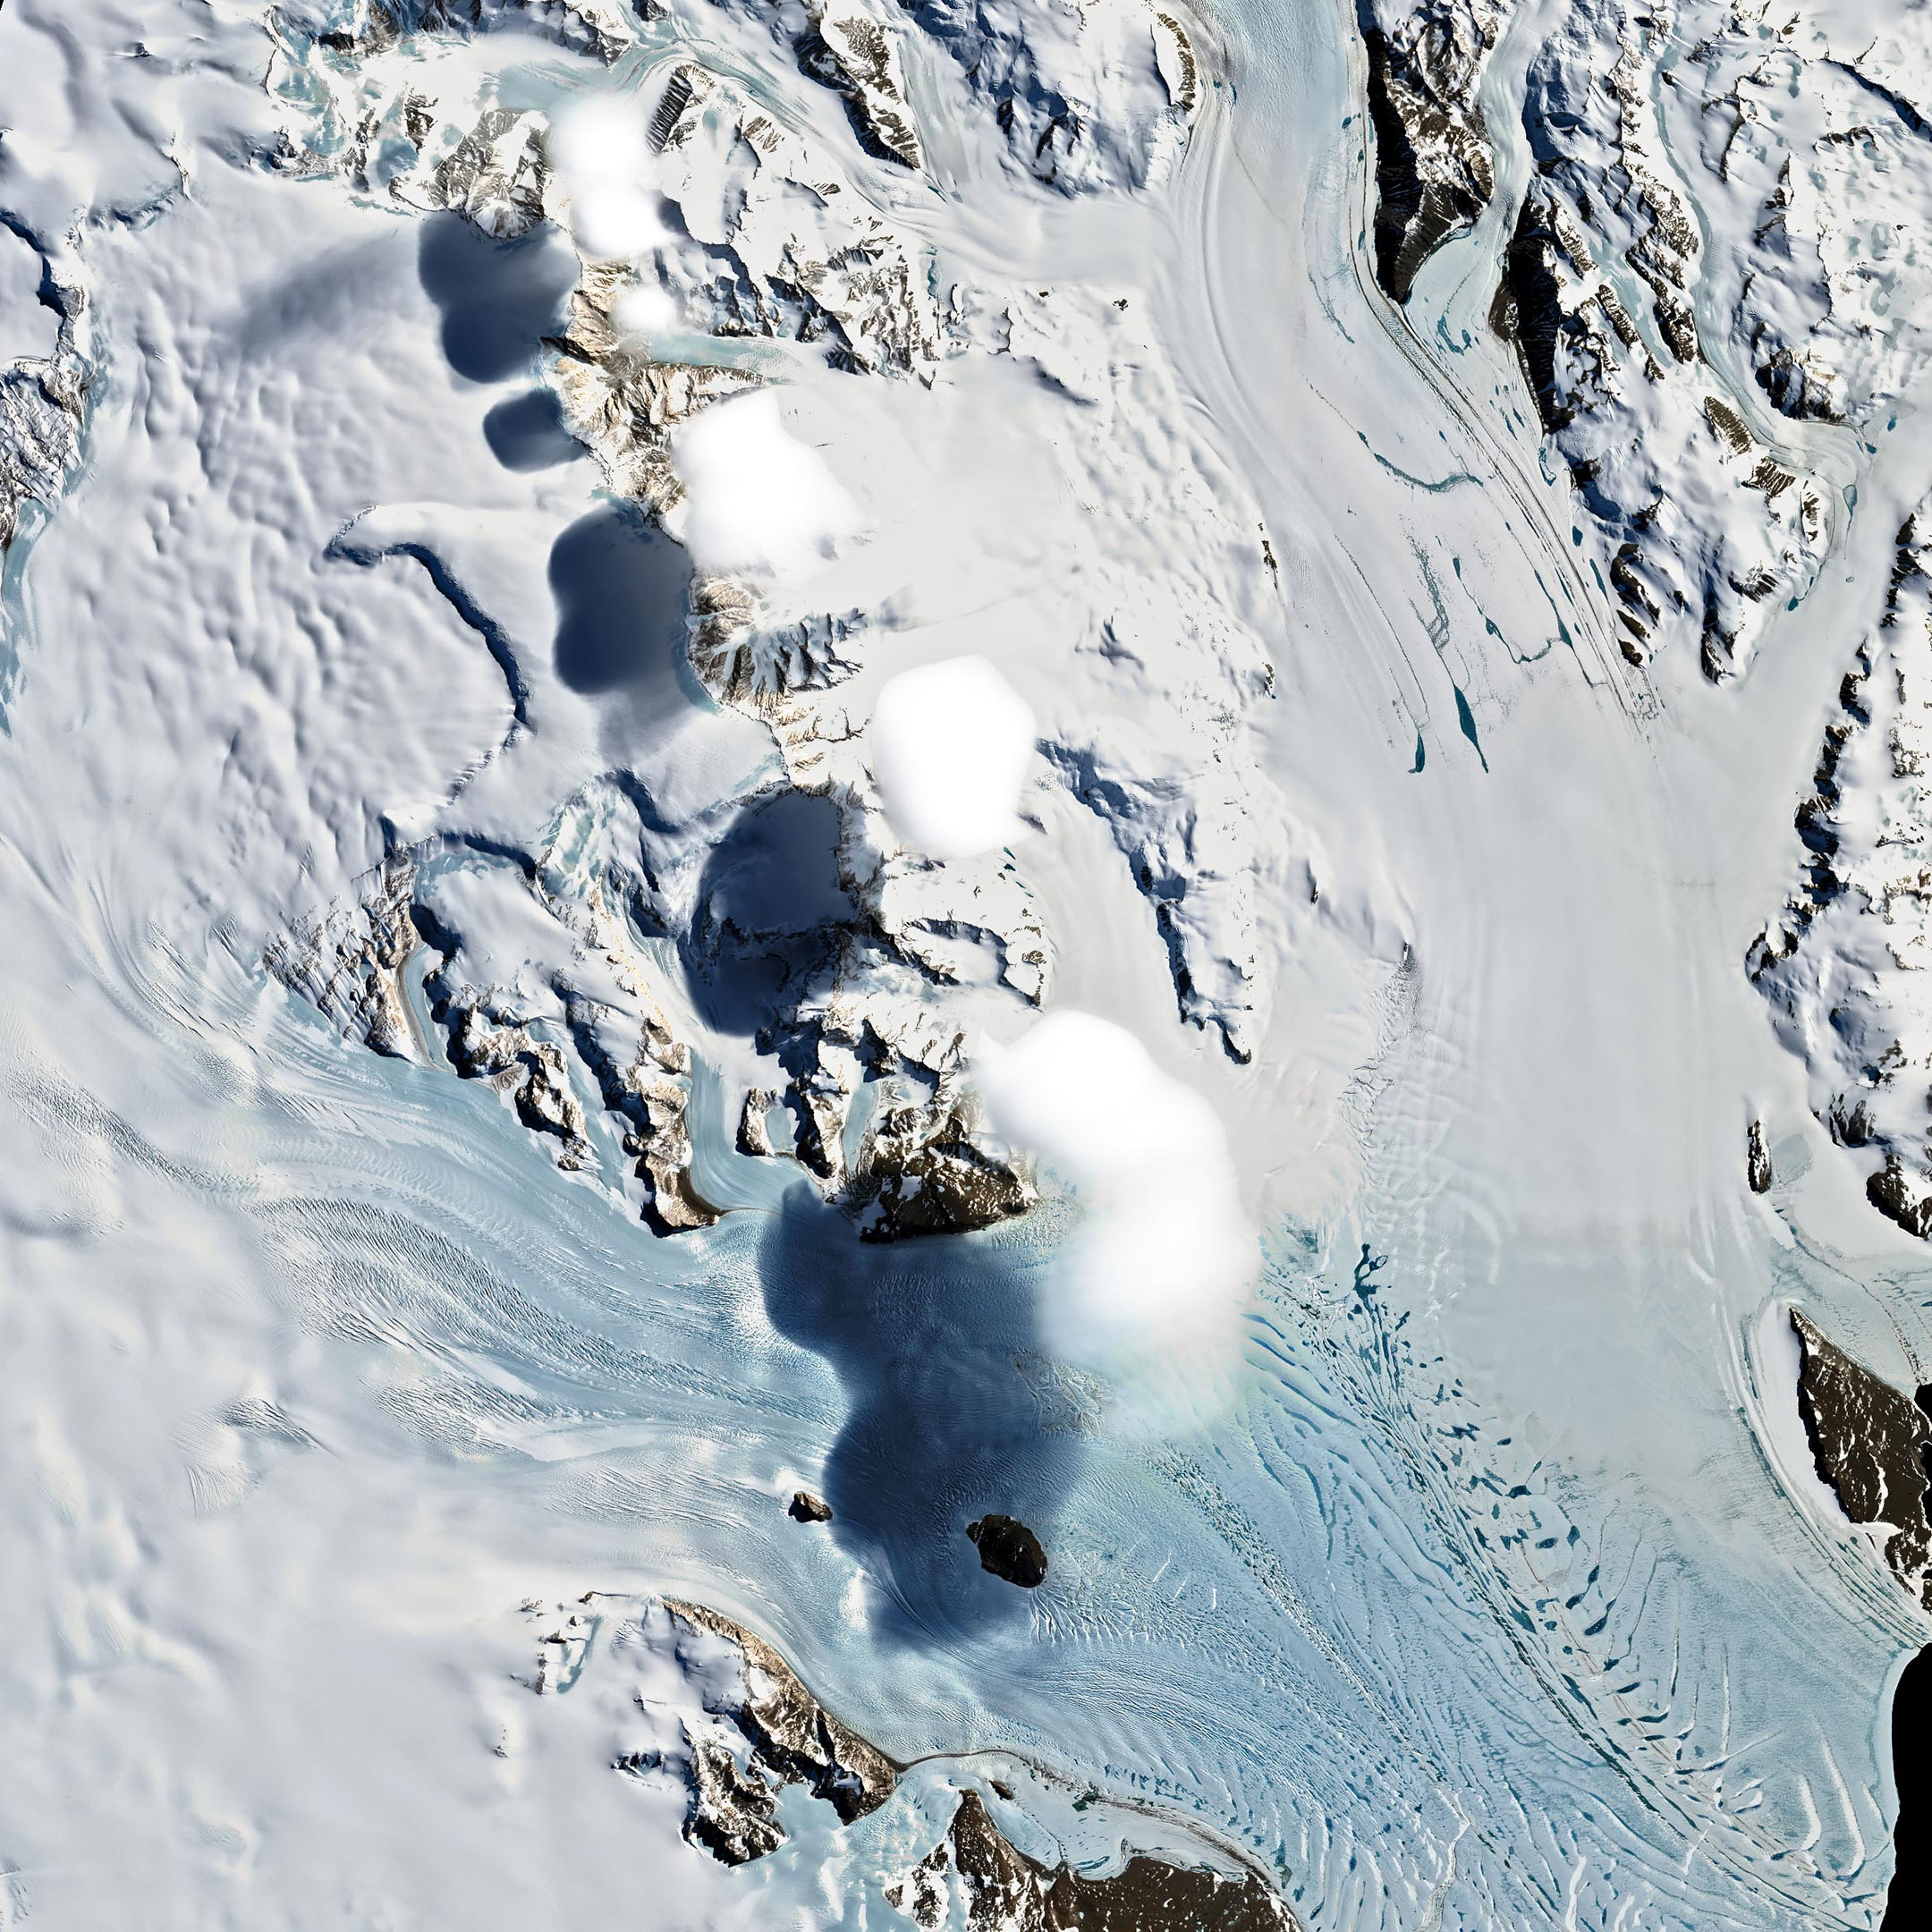 Mysterious Hovering Clouds Spotted Over the Transantarctic Mountains